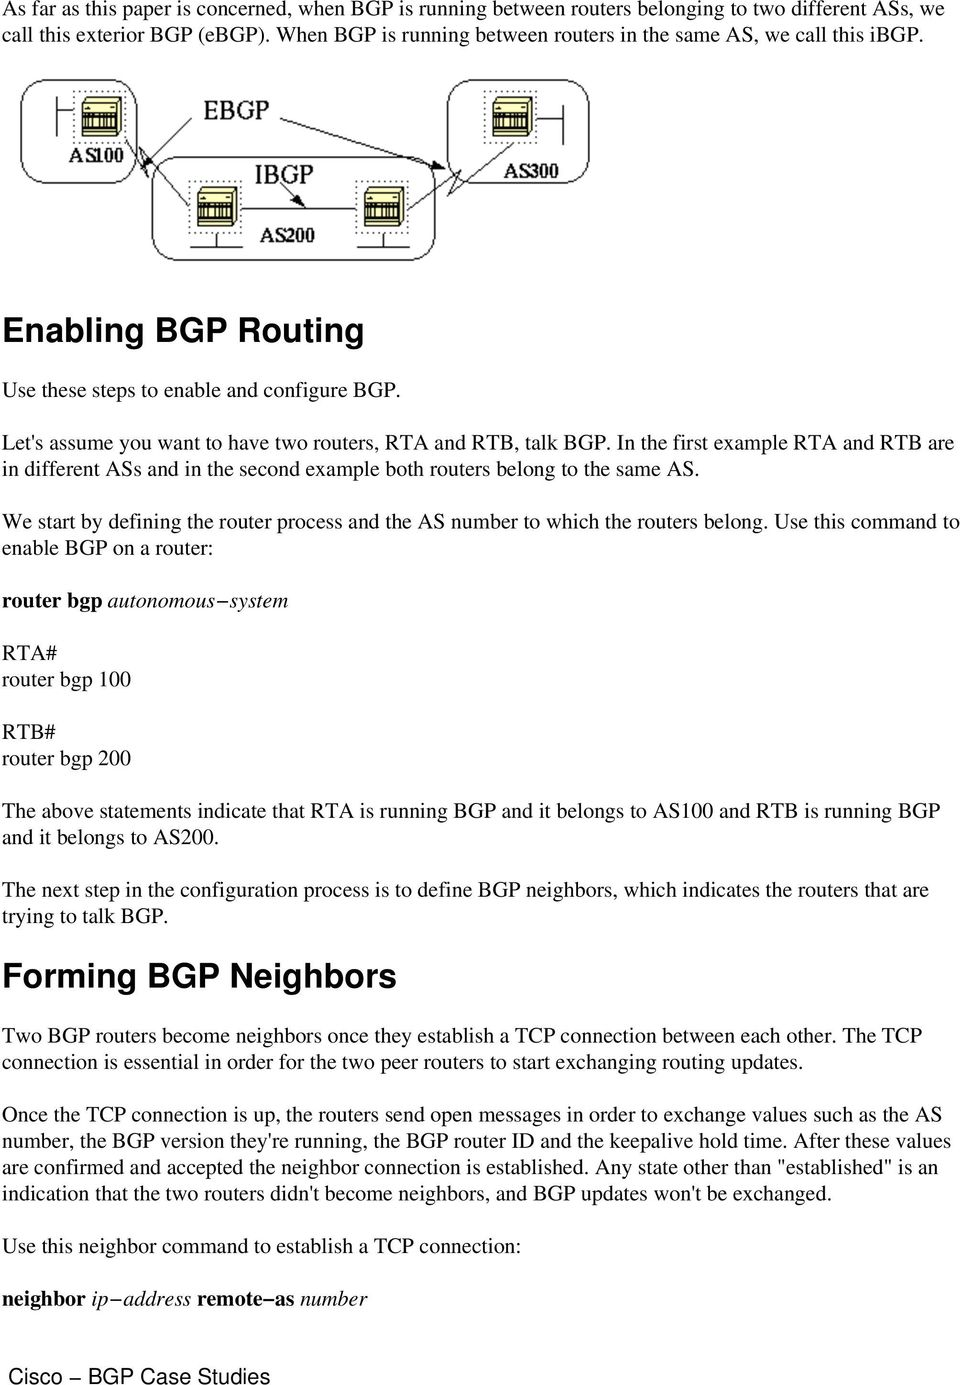 Let's assume you want to have two routers, RTA and RTB, talk BGP. In the first example RTA and RTB are in different ASs and in the second example both routers belong to the same AS.